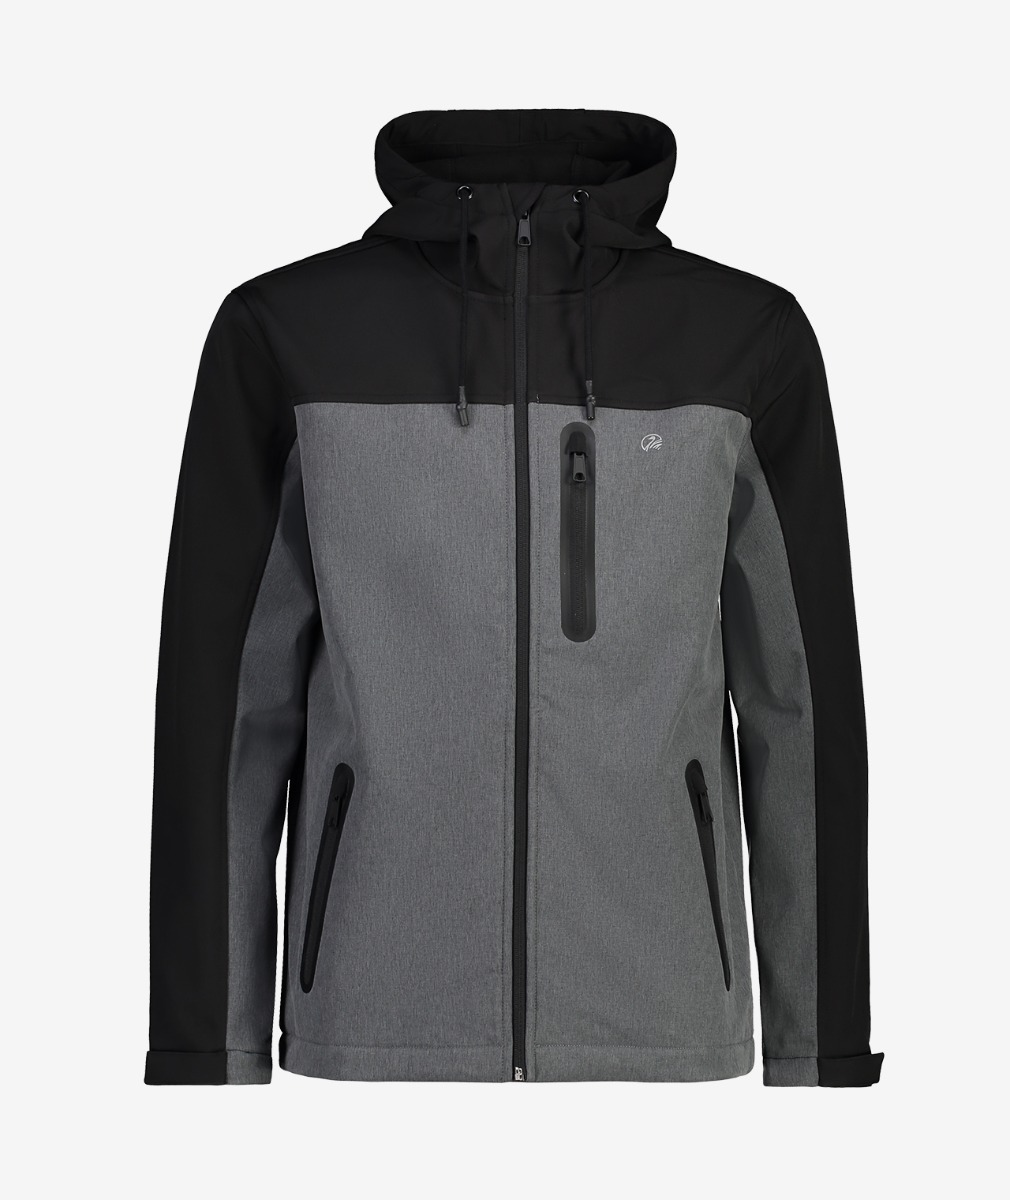 Swanndri Men's Discovery Softshell Technical Jacket in Charcoal/Black